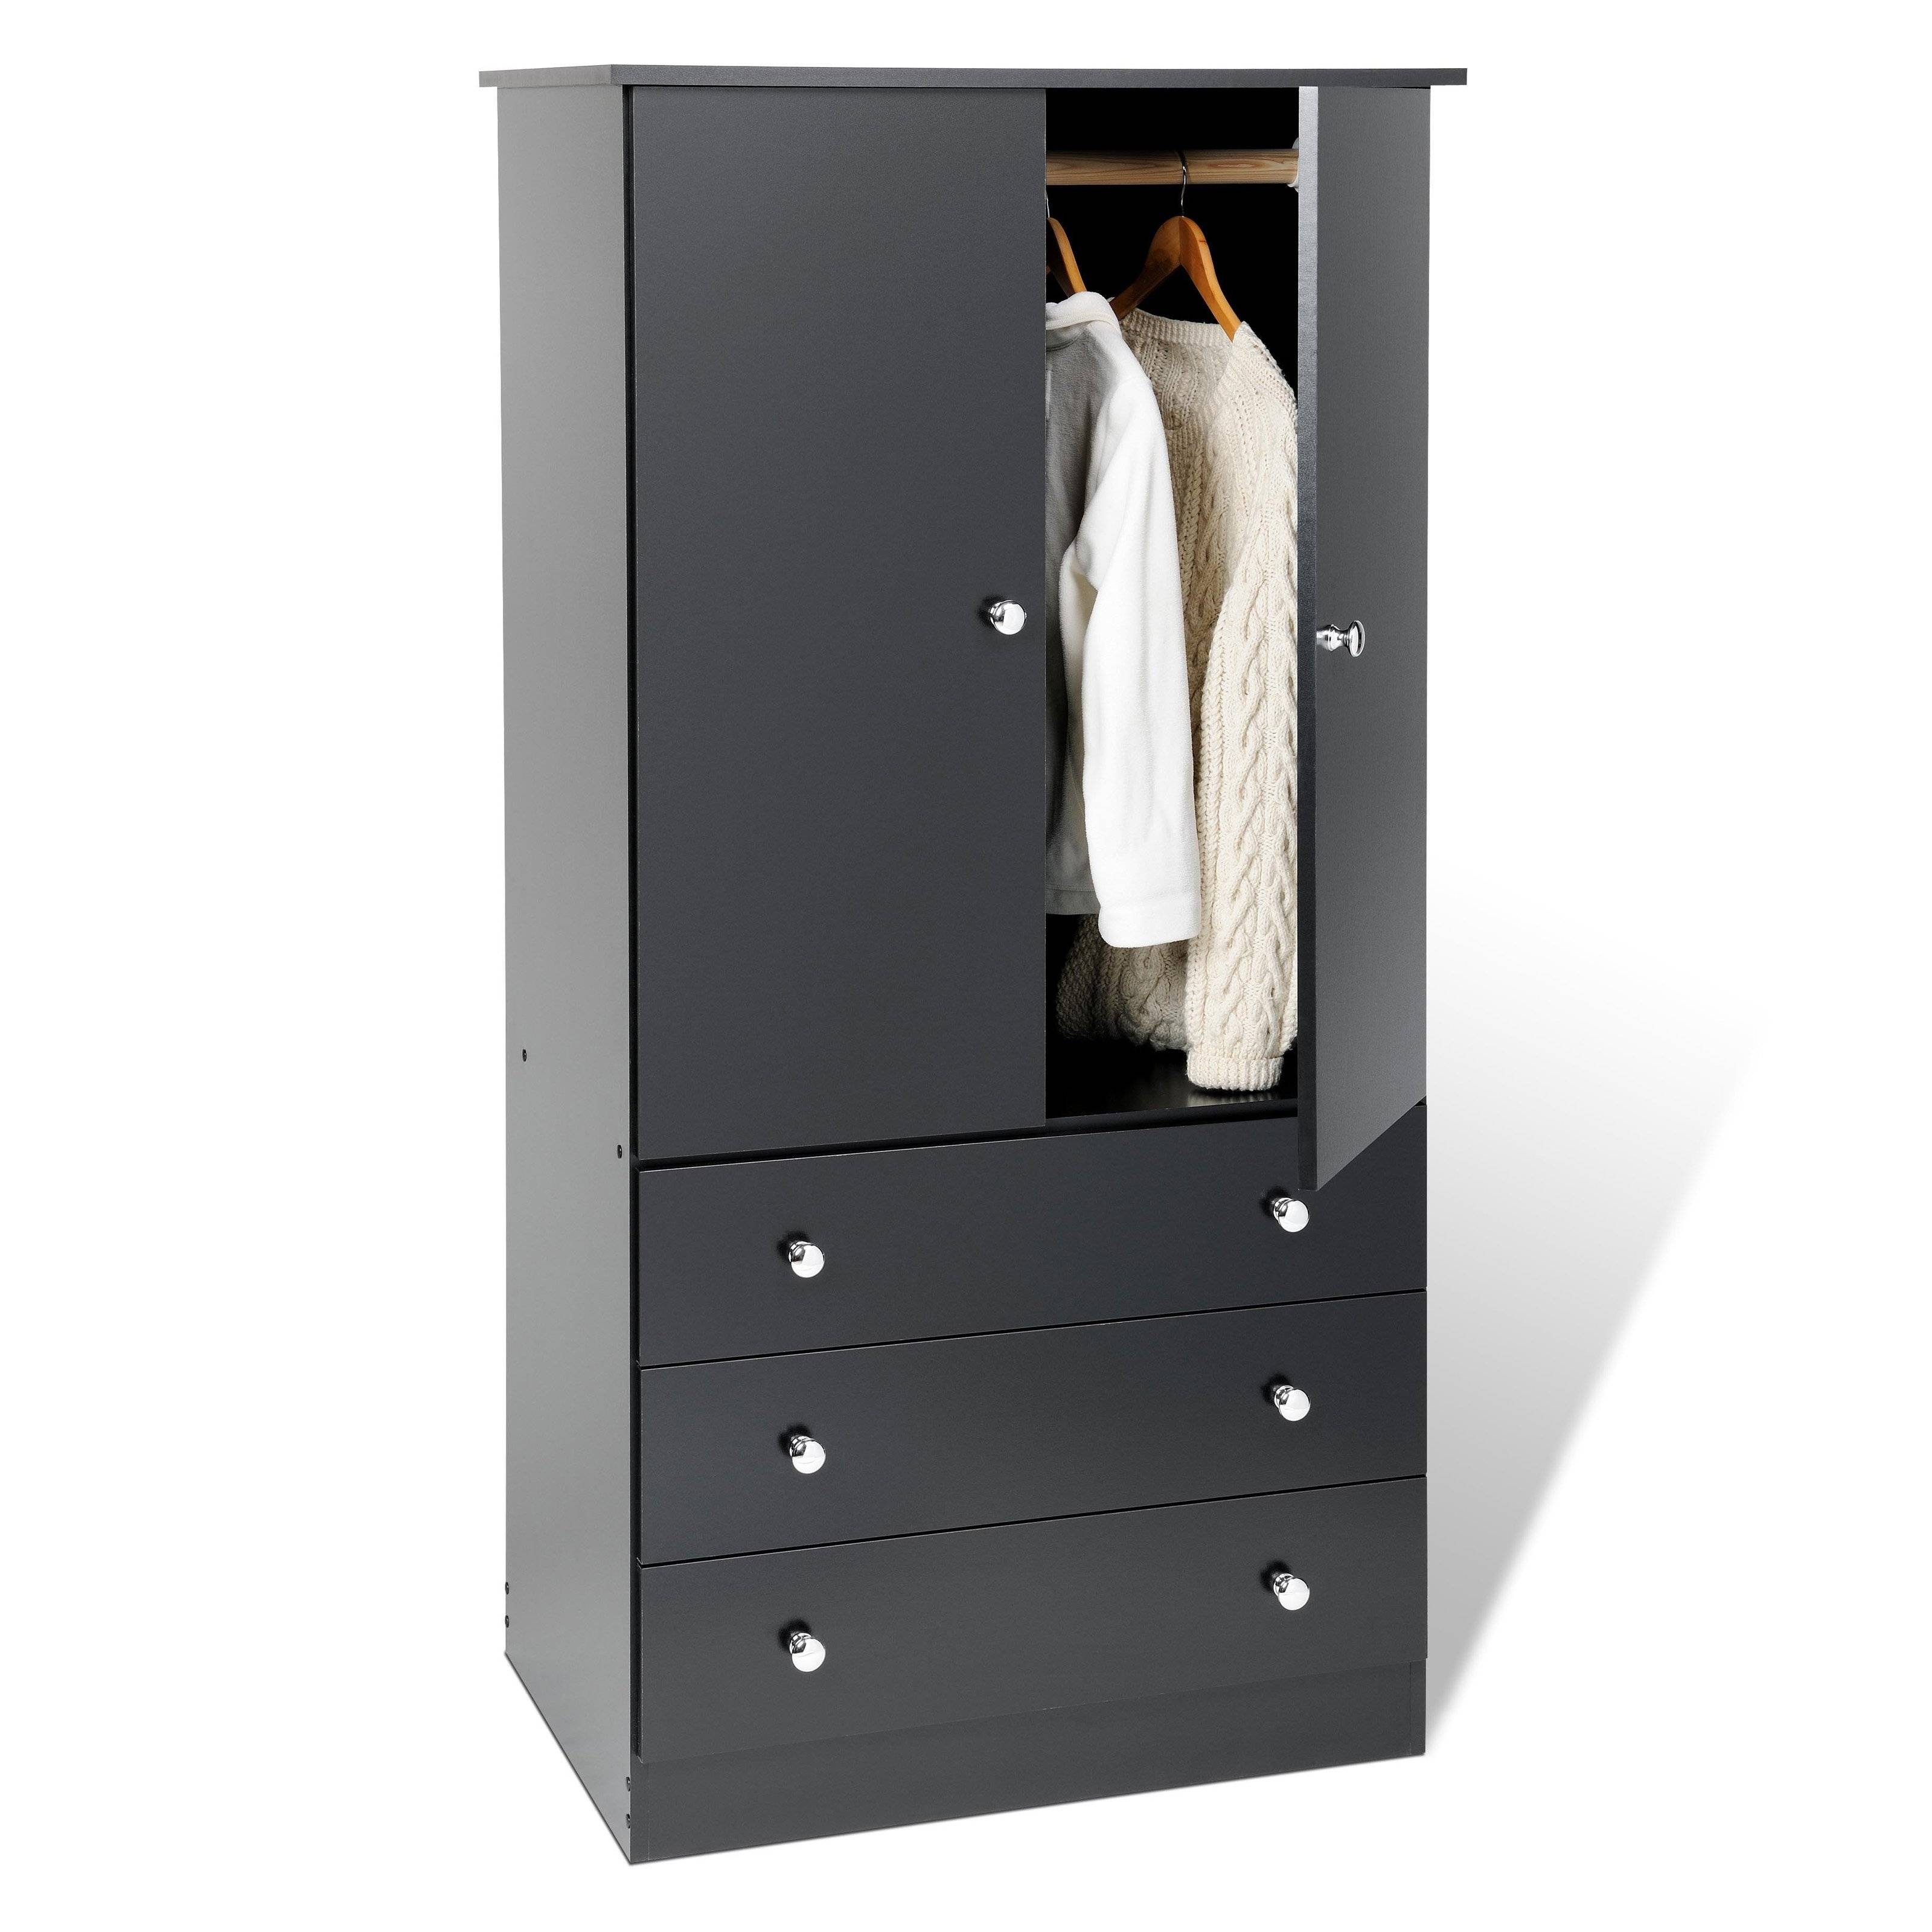 Furniture: Fancy Wardrobe Armoire For Wardrobe Organizer Idea inside Black French Wardrobes (Image 10 of 15)